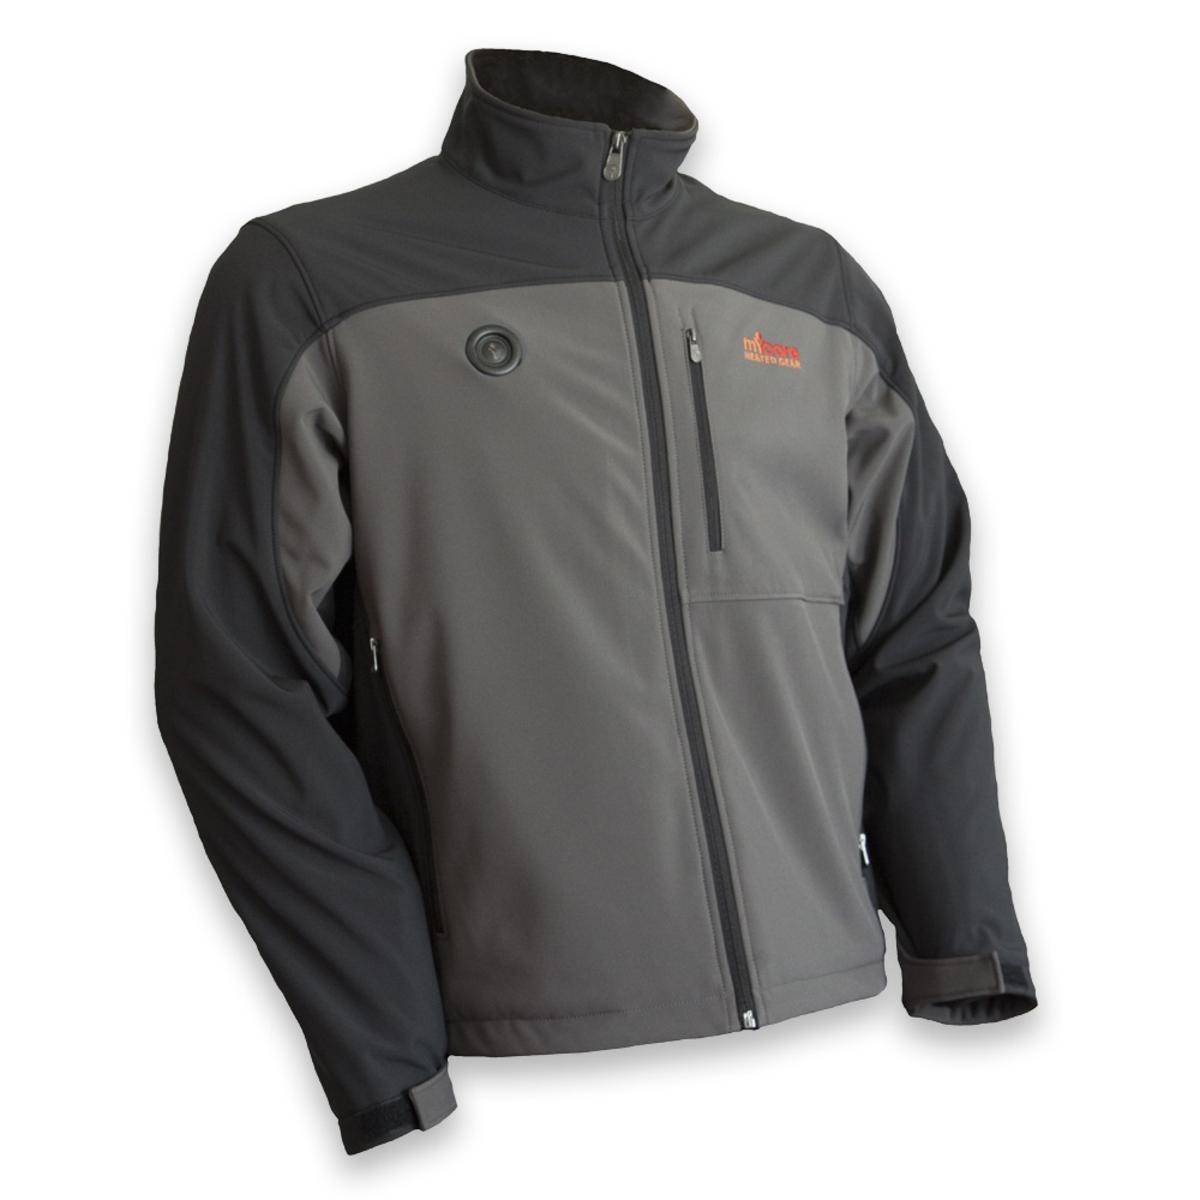 fe3687df8daa3 MyCore Control Women's Battery Heated Softshell Jacket - Black/Grey - The  Warming Store